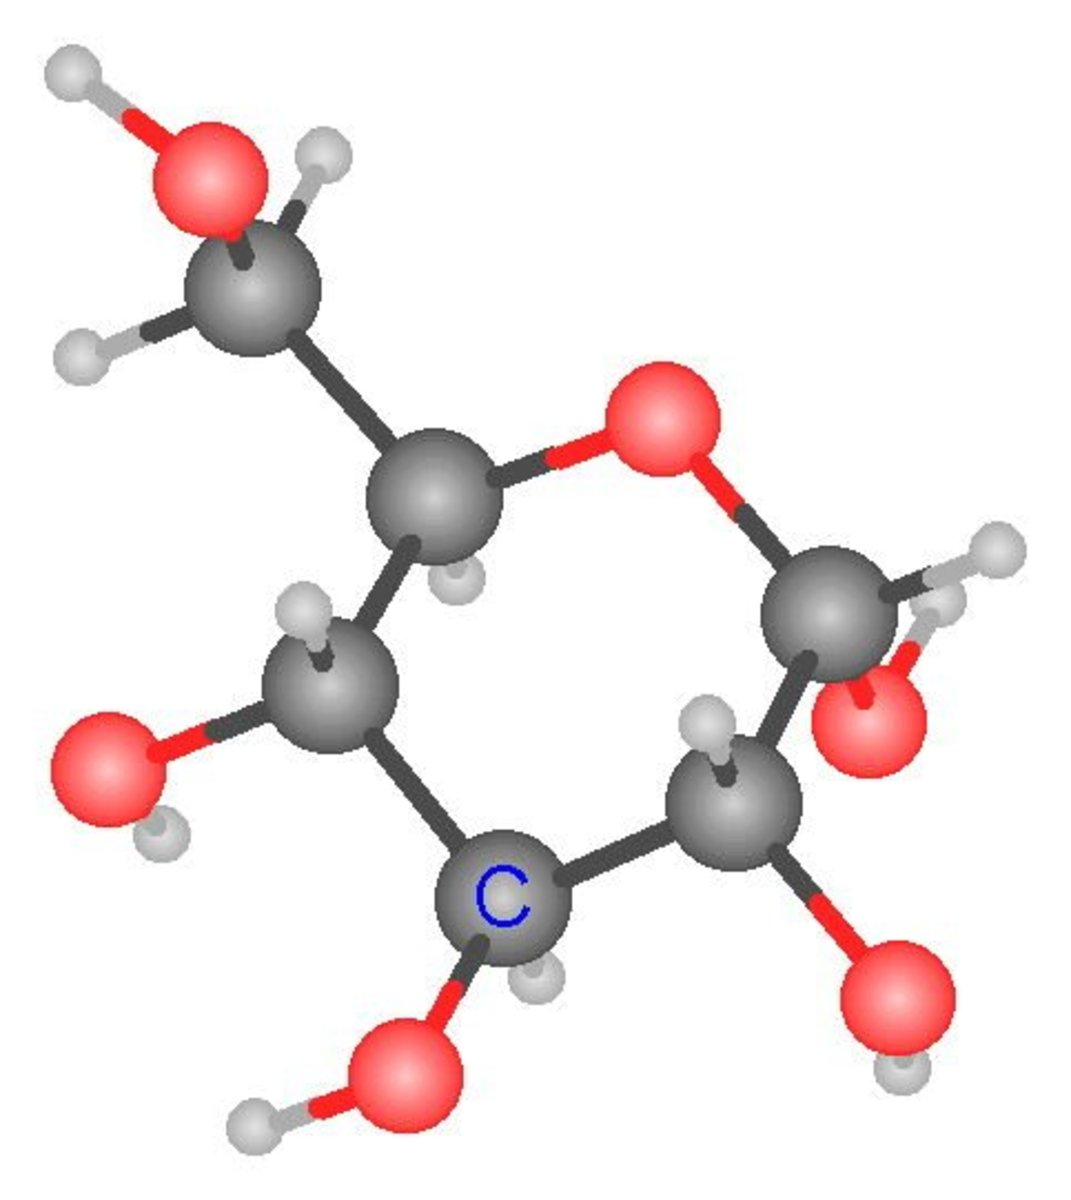 Ball and stick model of a glucose molecule. Dark gray balls are carbon atoms, red balls are oxygen atoms and small light gray balls are hydrogen atoms